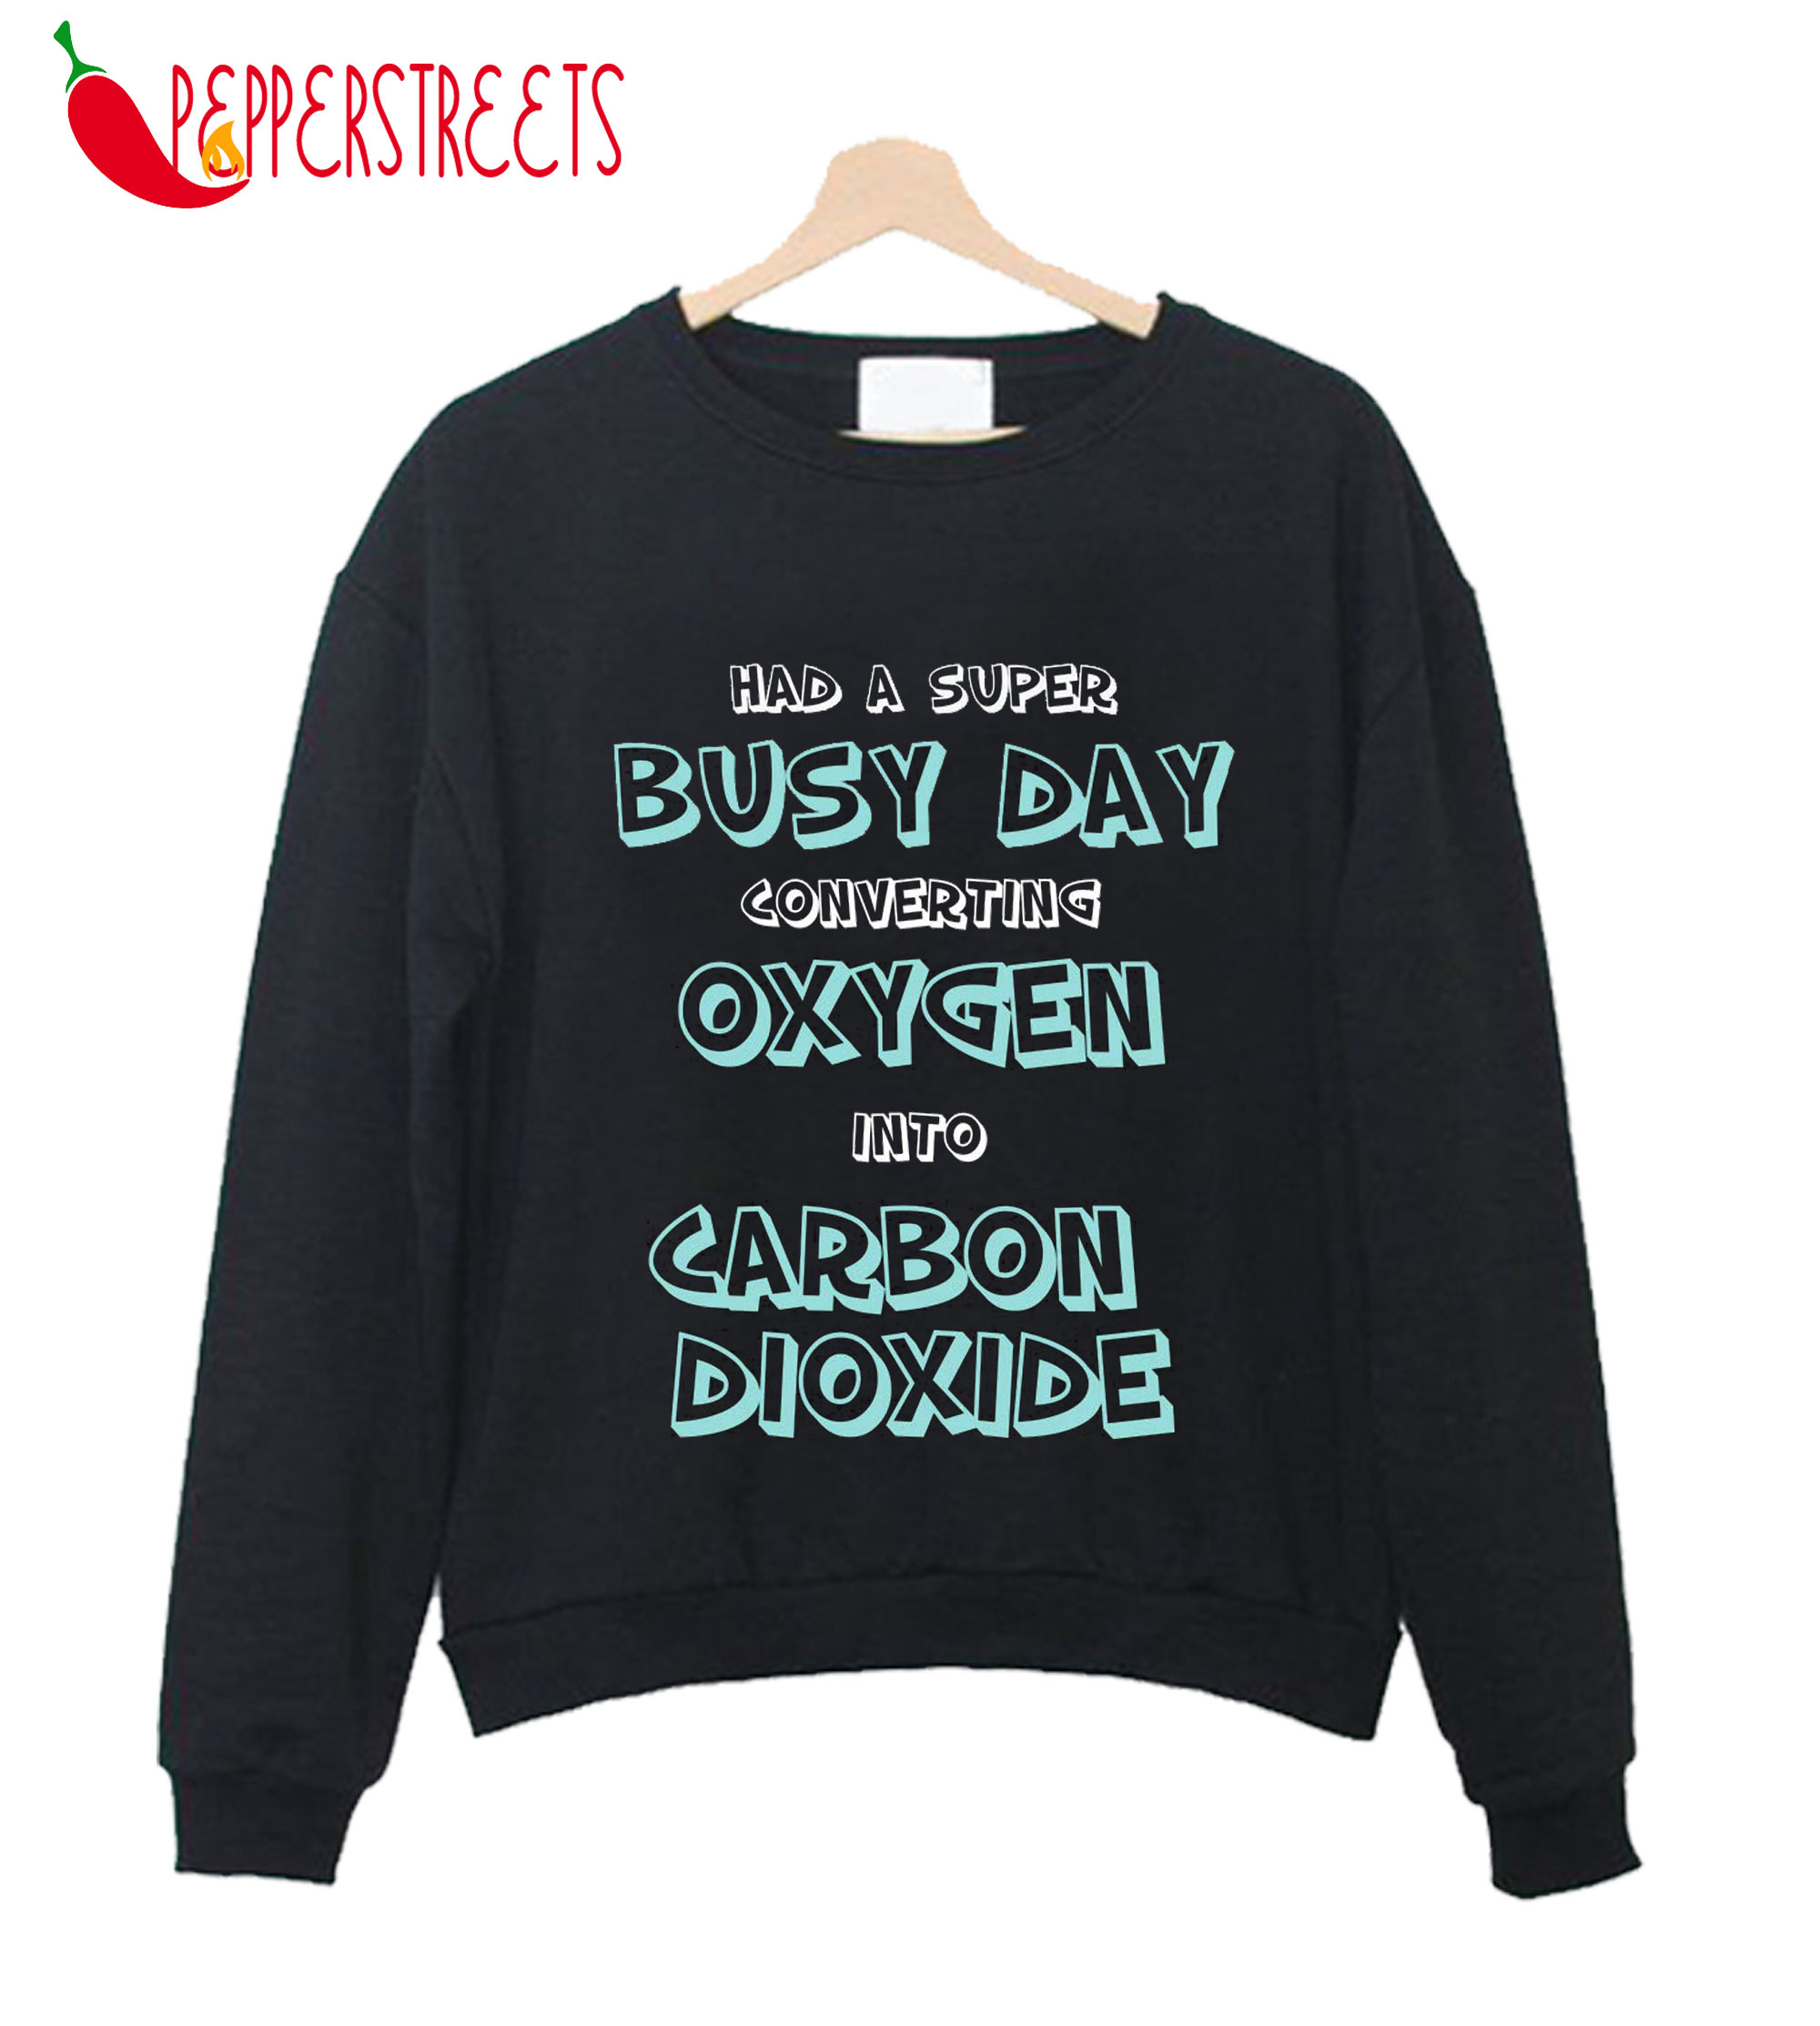 Busy Day Oxygen Carbon Dioxide Sweatshirt